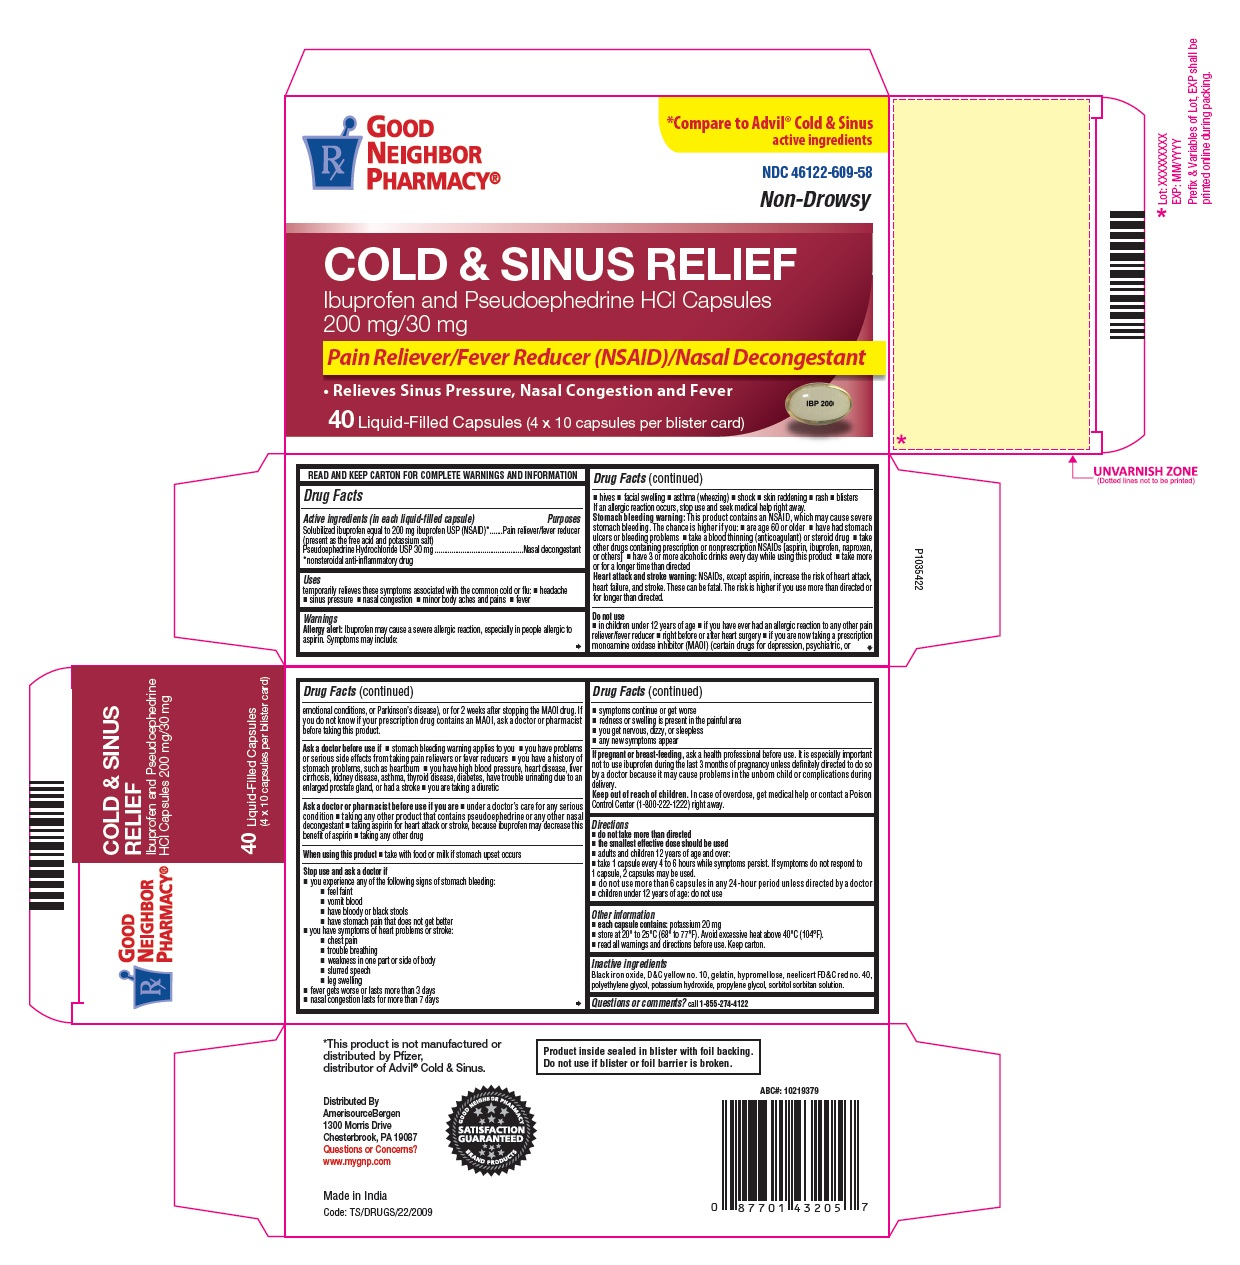 PACKAGE LABEL-PRINCIPAL DISPLAY PANEL - 200 mg/30 mg (40 Liquid-Filled Capsules)